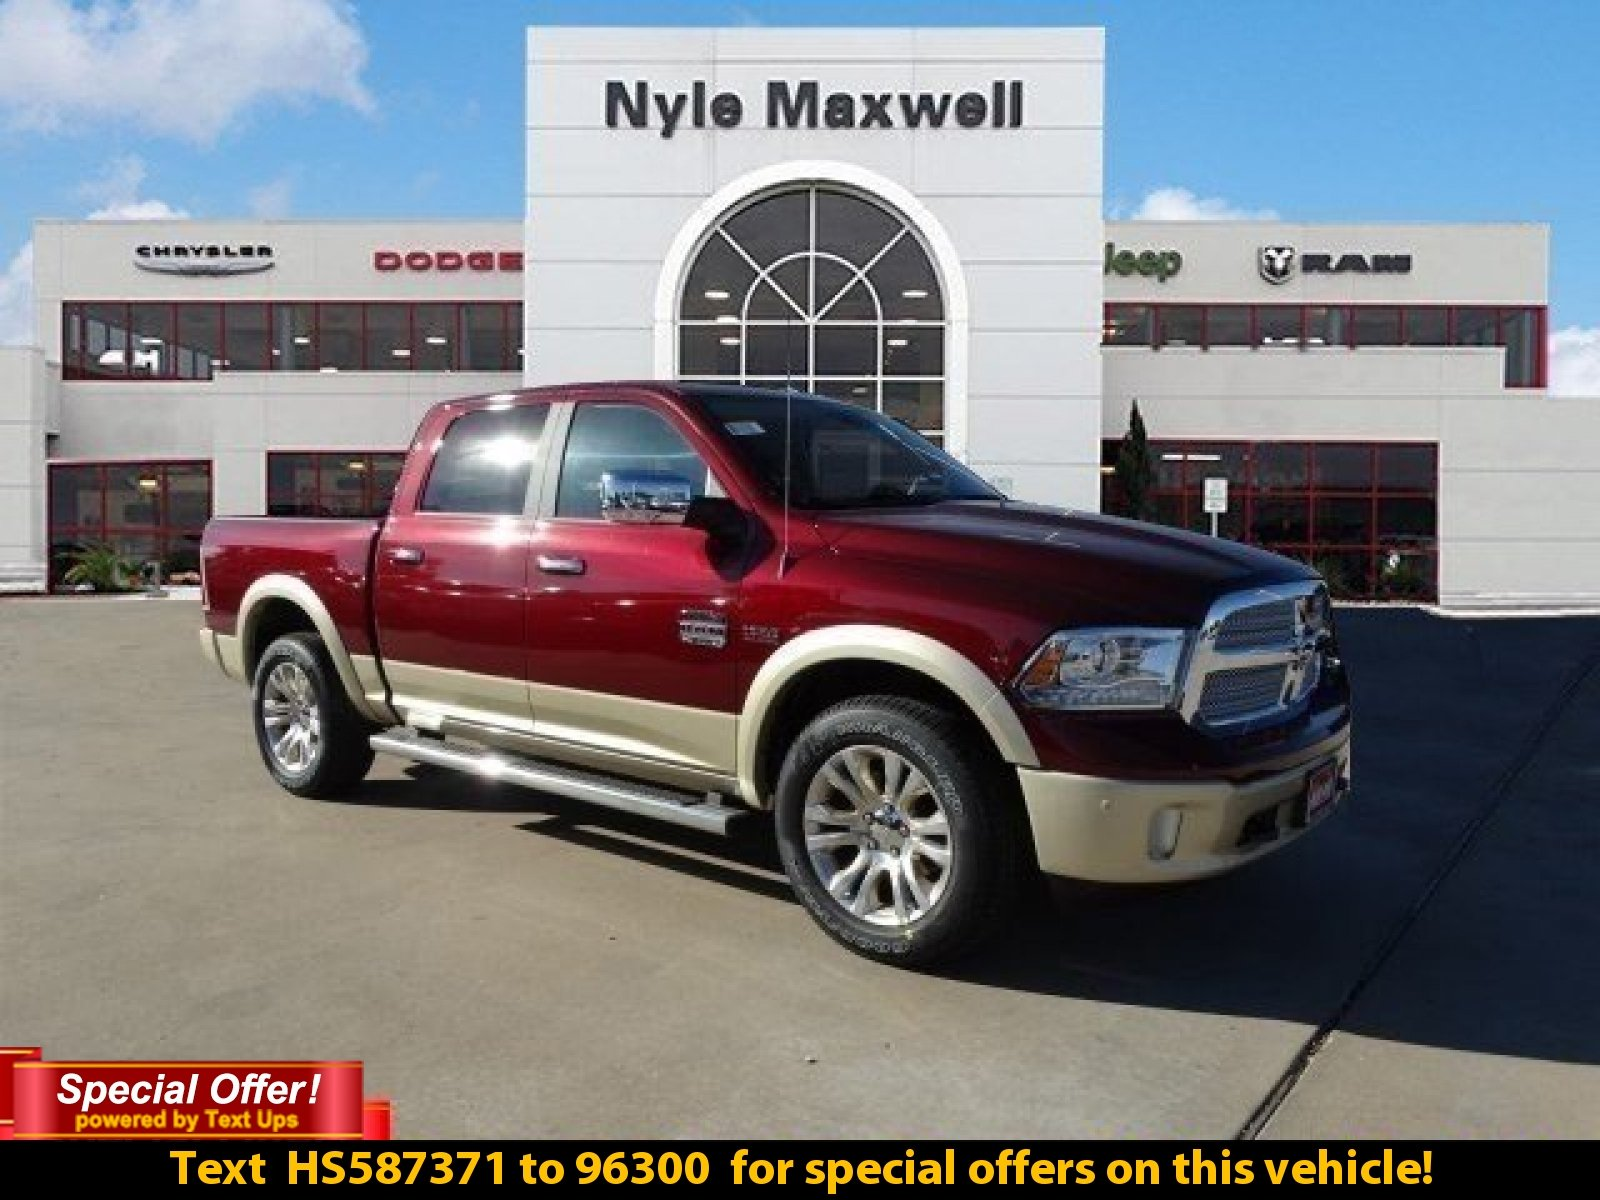 new 2017 ram 1500 laramie longhorn crew cab in austin hs587371 nyle maxwell chrysler dodge. Black Bedroom Furniture Sets. Home Design Ideas